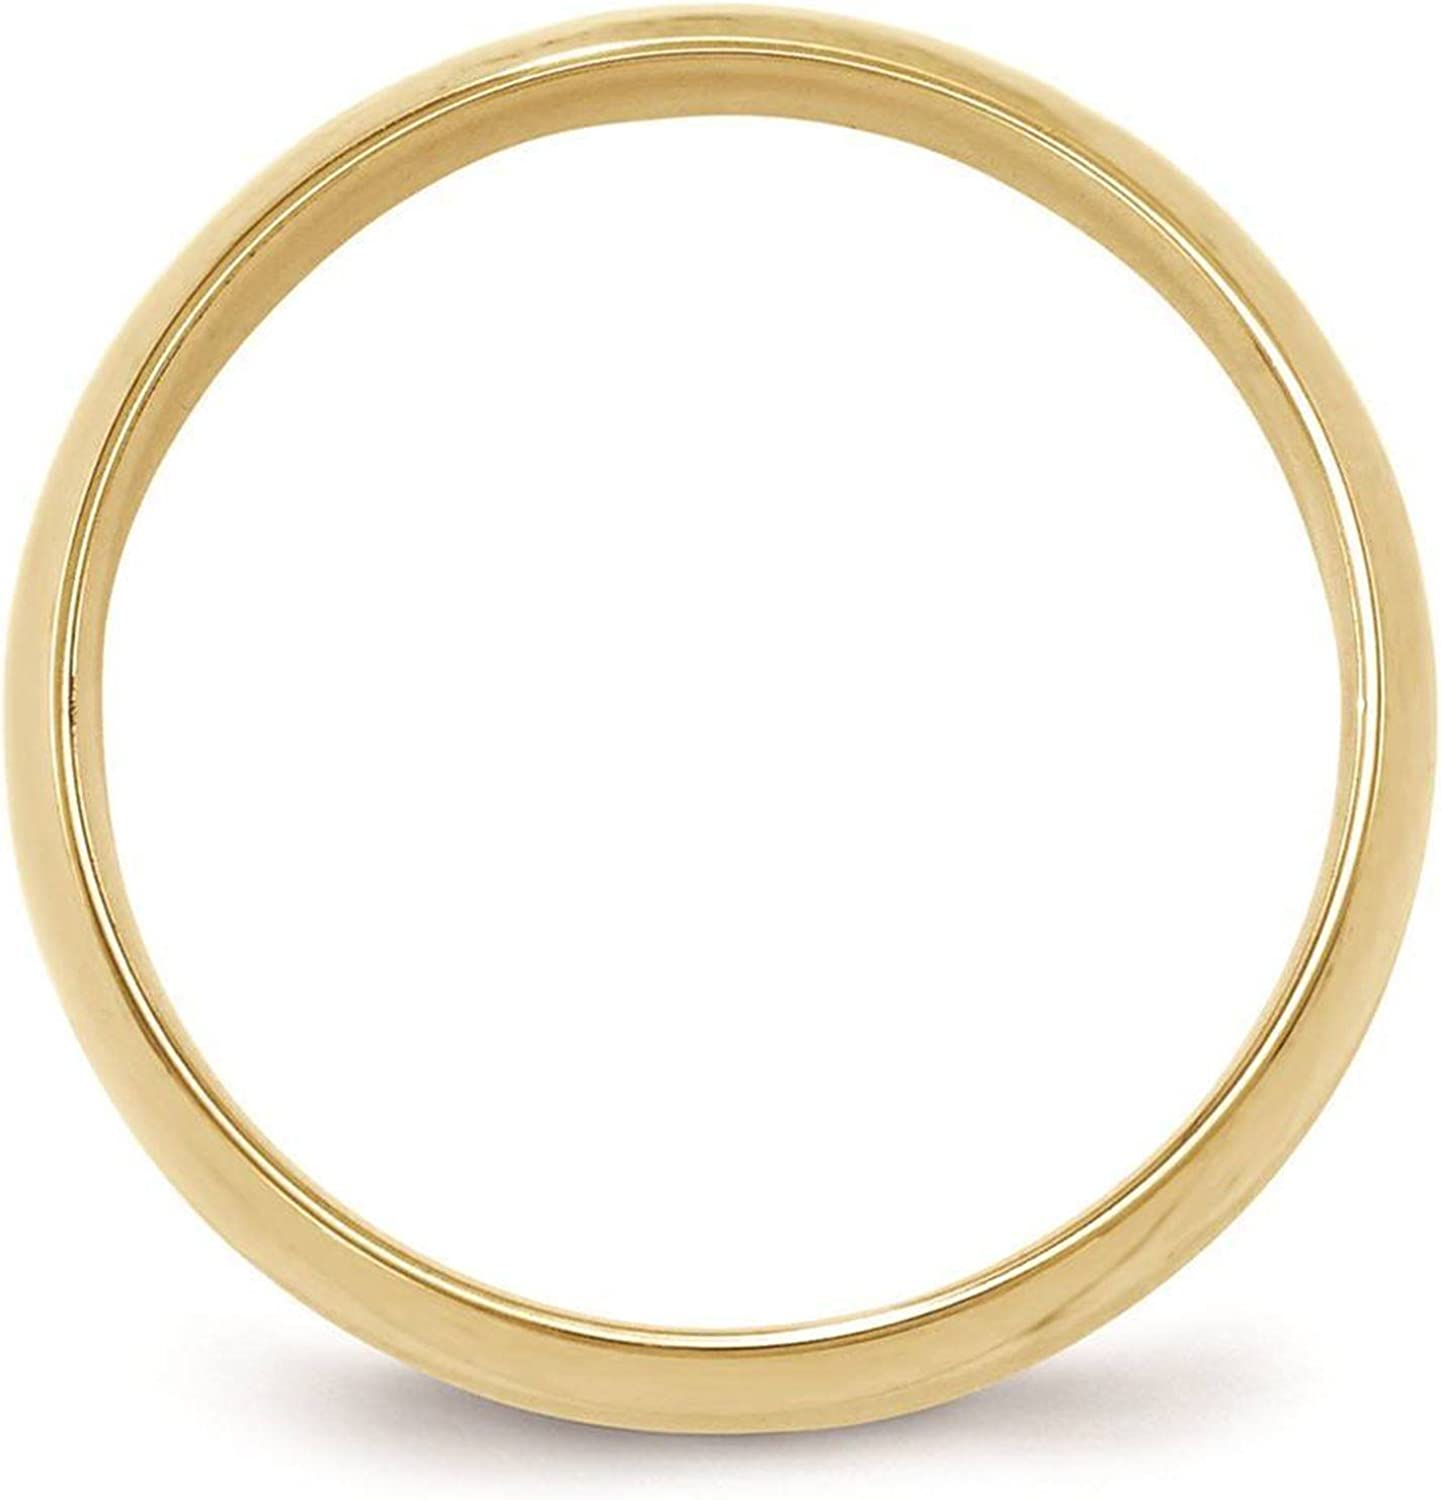 14k Yellow Gold 5mm Light Comfort Fit Wedding Ring Band Size 4-14 Full /& Half Sizes